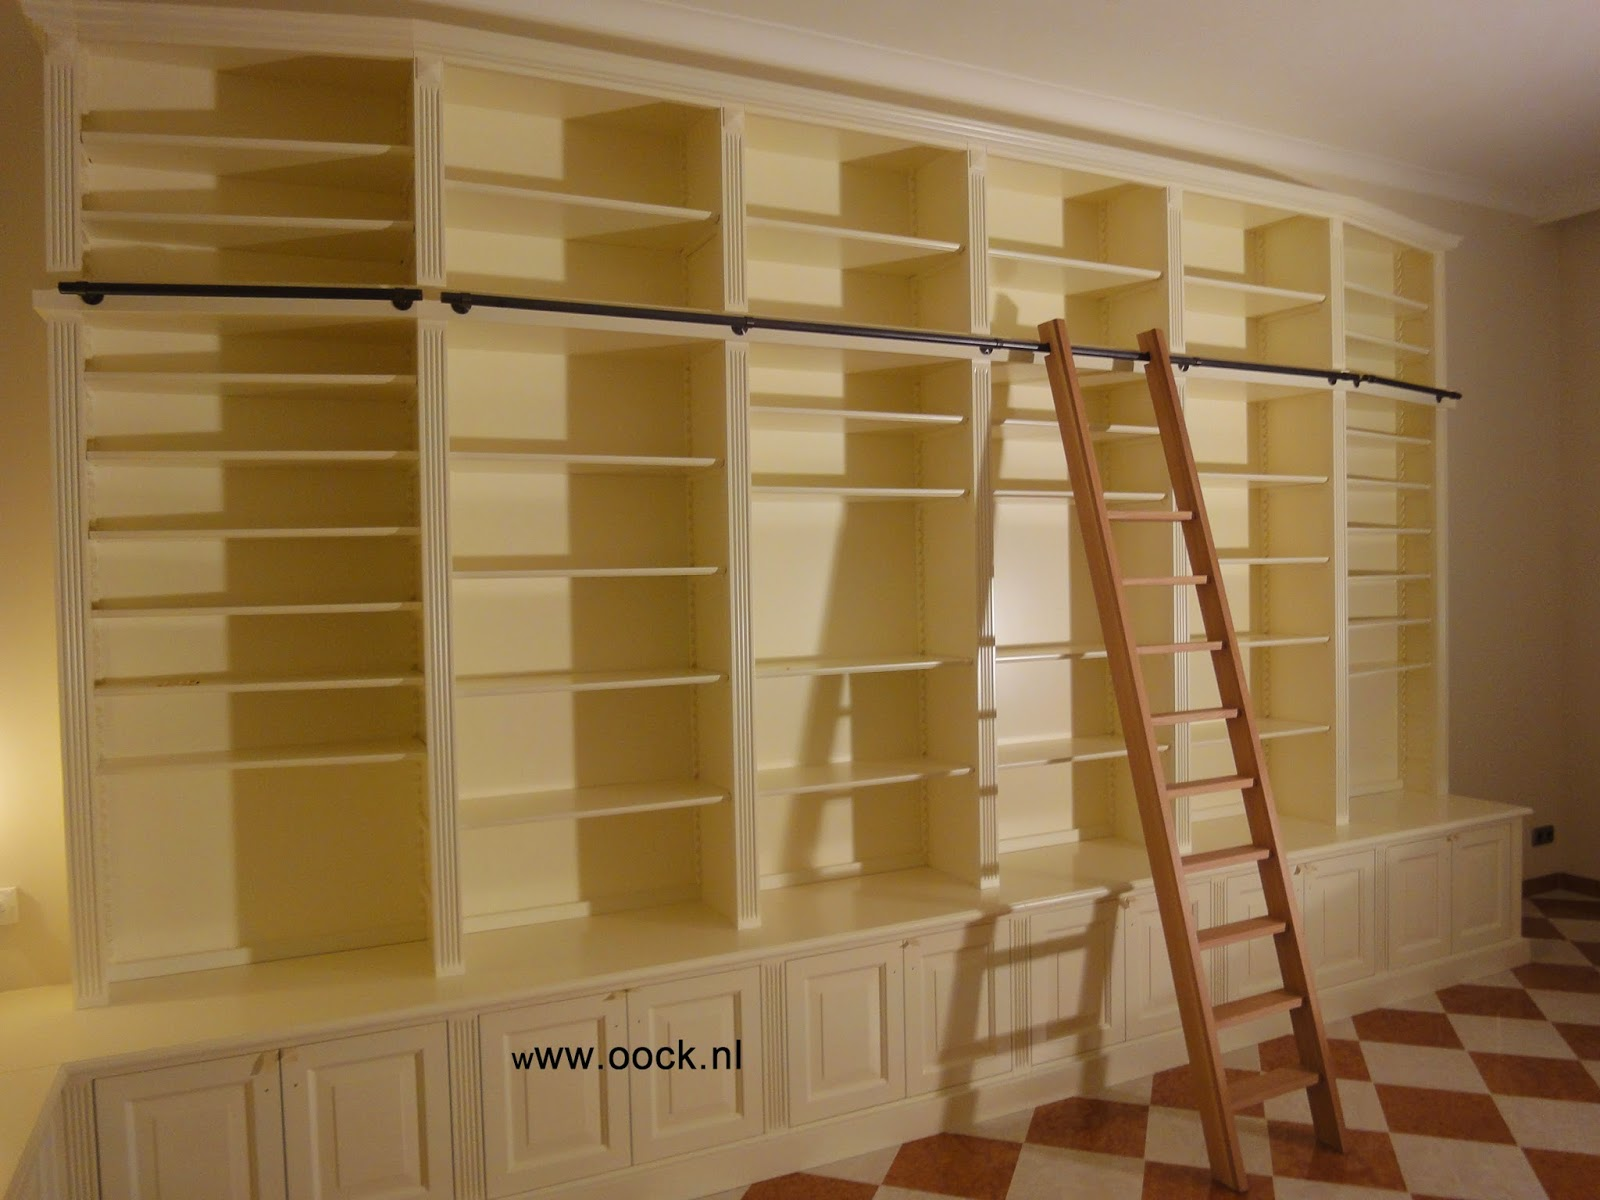 Interieurbouw trends in custom made bookcases